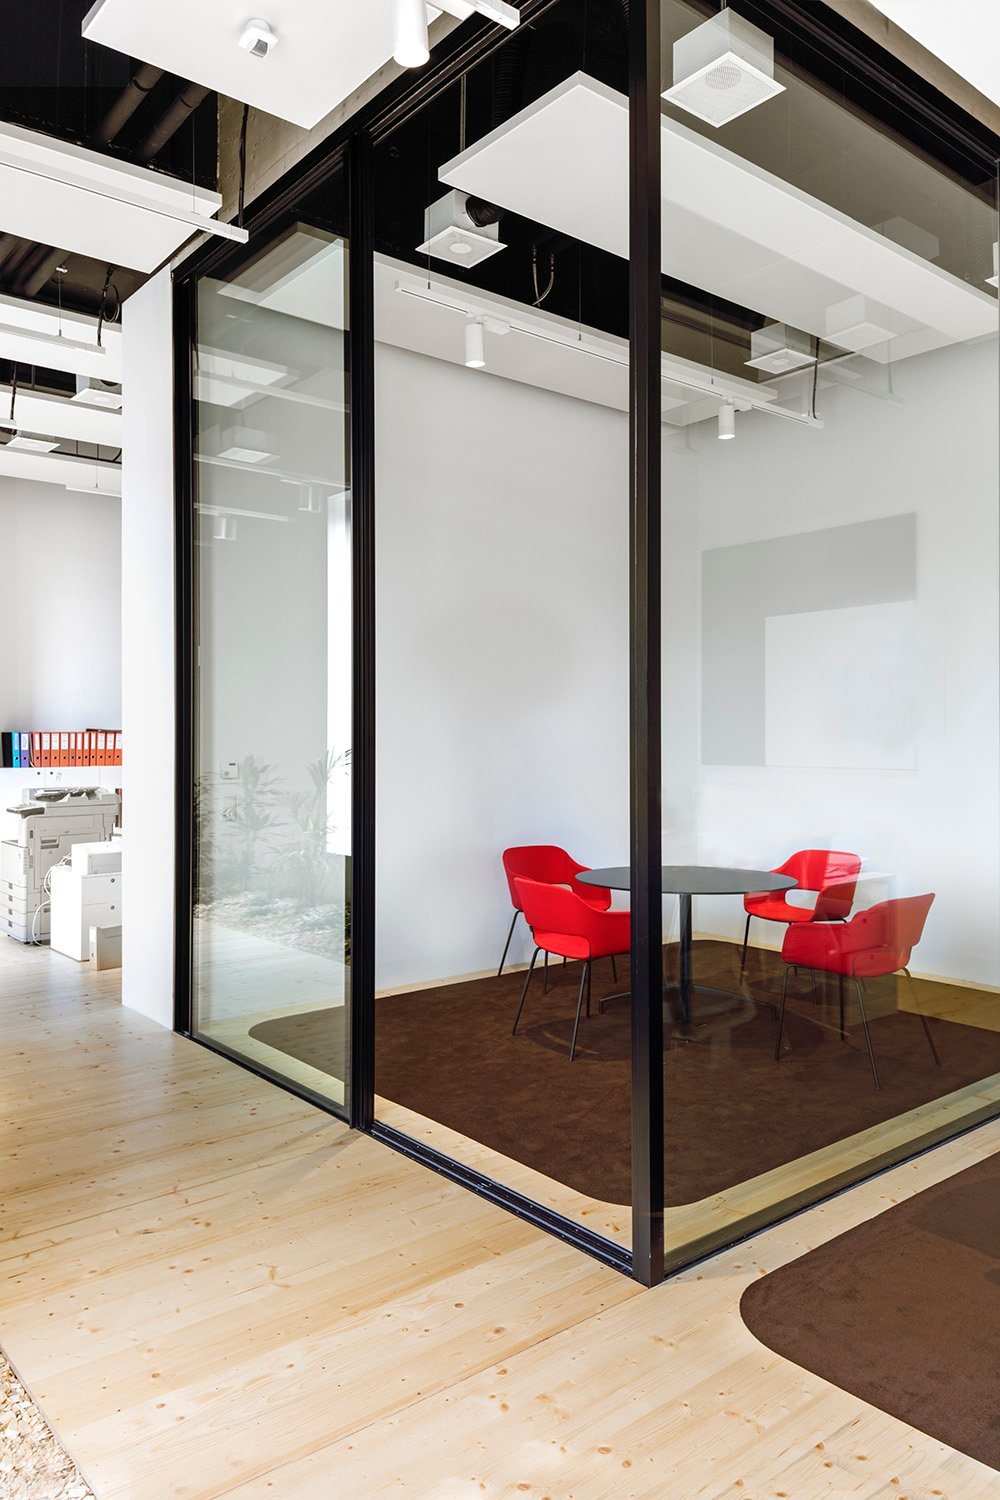 Private offices delineate open shared workspaces and are enclosed by sliding glass partitions. Delphine Burtin